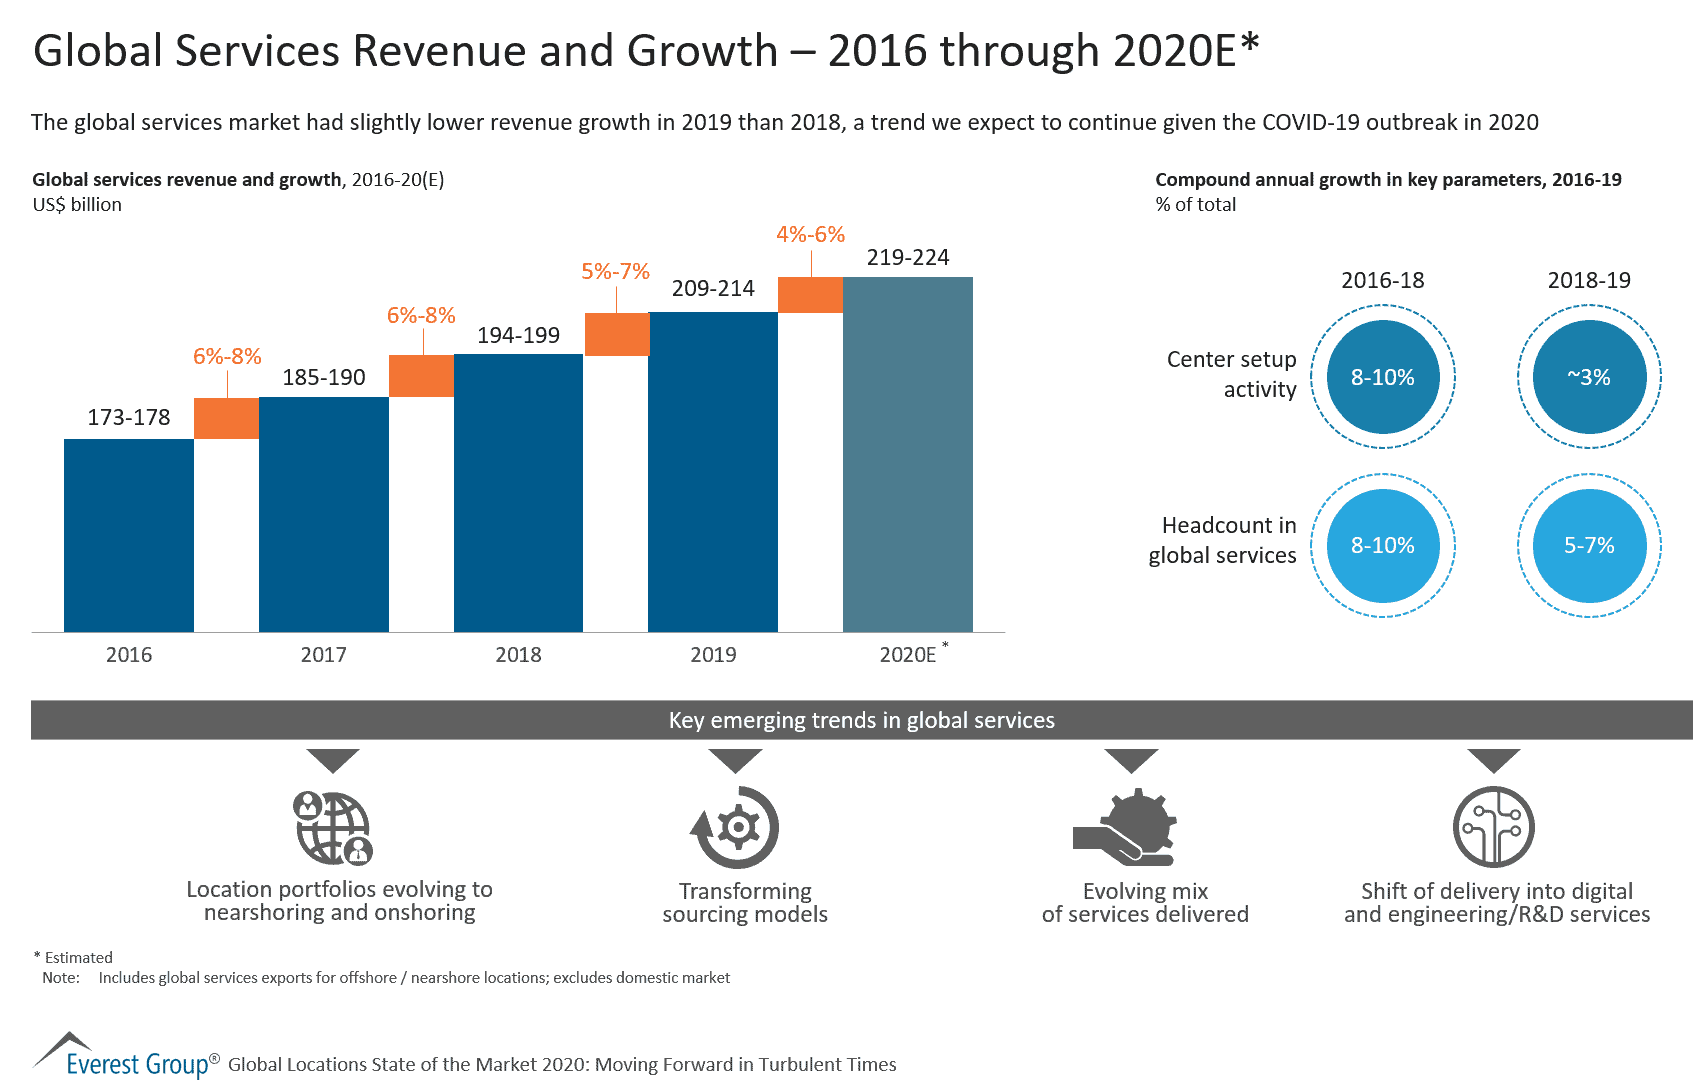 Global Services Revenue and Growth – 2016 through 2020E